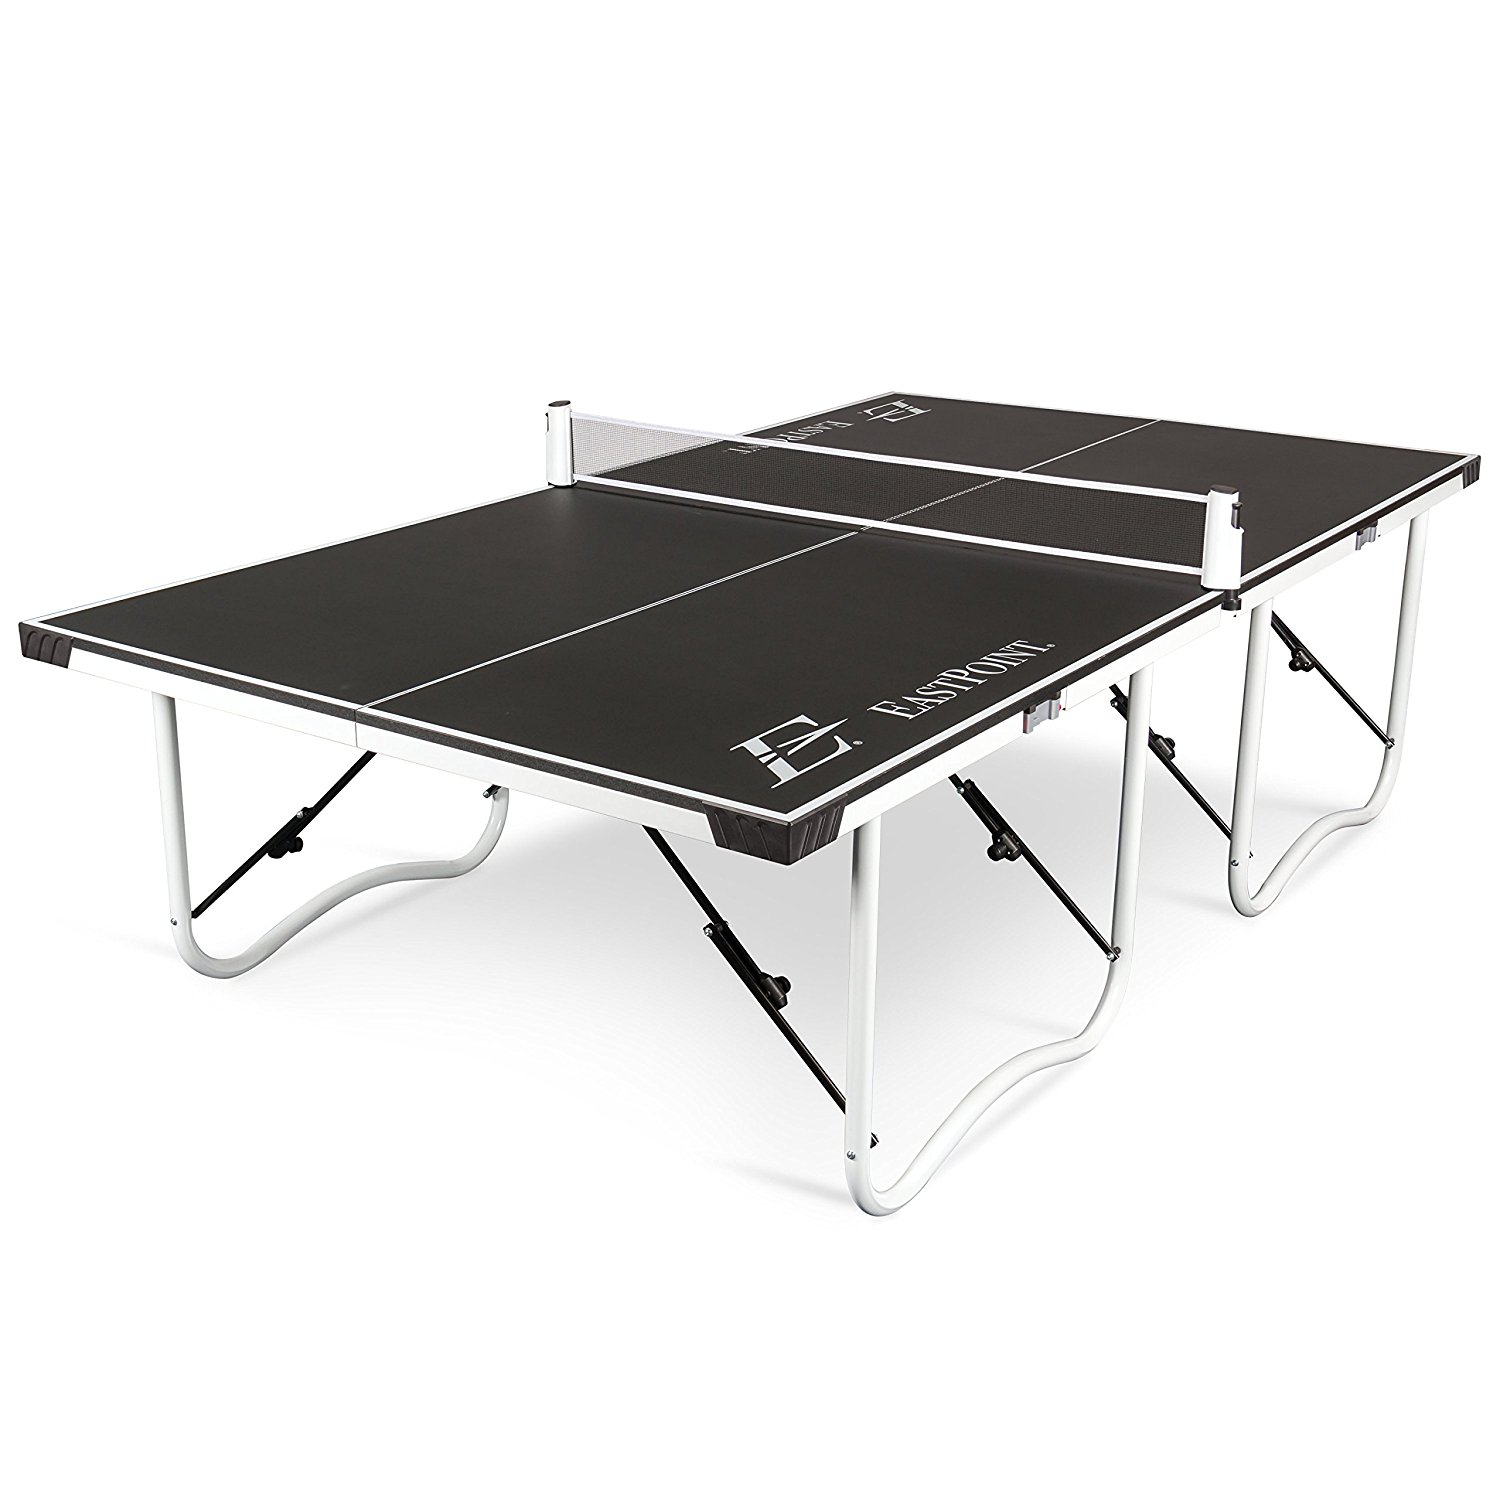 EastPoint Sports Easy Set Up Table Tennis Table For Only $88.47 Shipped!